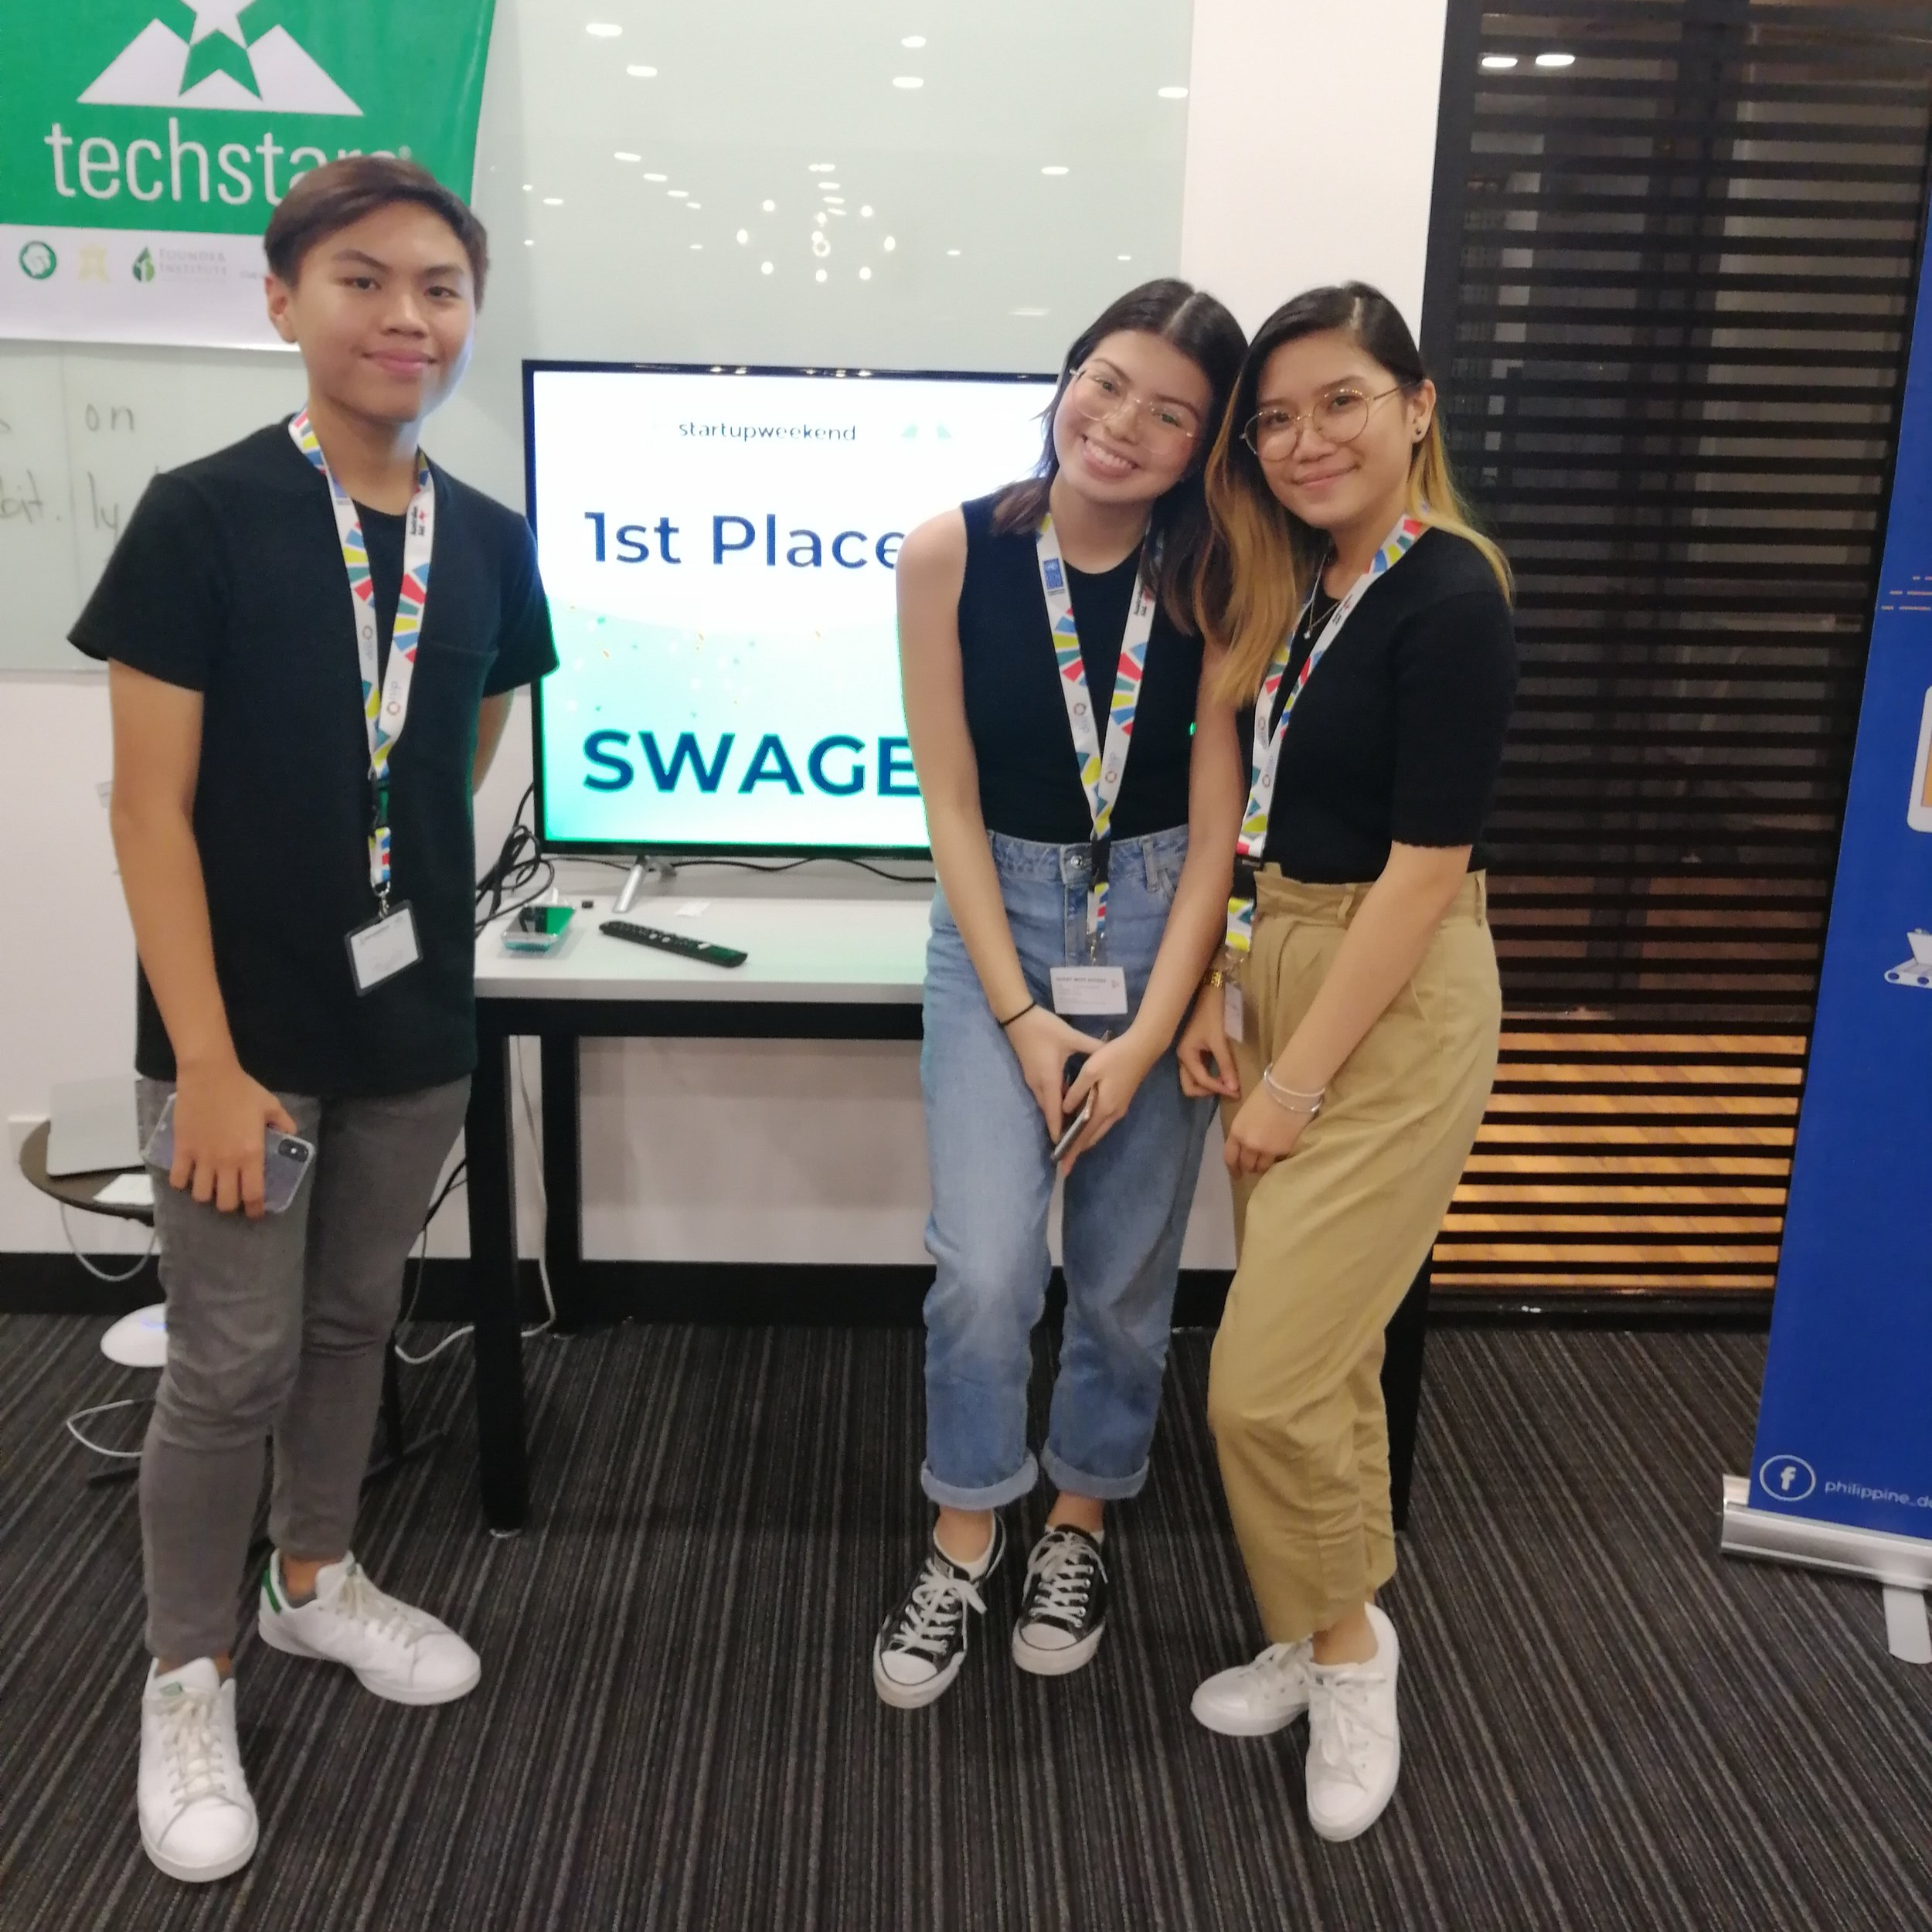 Two teams of Entrepreneurship students joined 2018 Start-Up Weekend Manila, a 54-hour start-up business competition participated by mostly professional corporate teams. Our team of senior high students—Reyjude Ramos, Sofia Manzano, and Julia Chong—came out on top with their mobile app SWAGE that aims to help people with dietary restrictions.